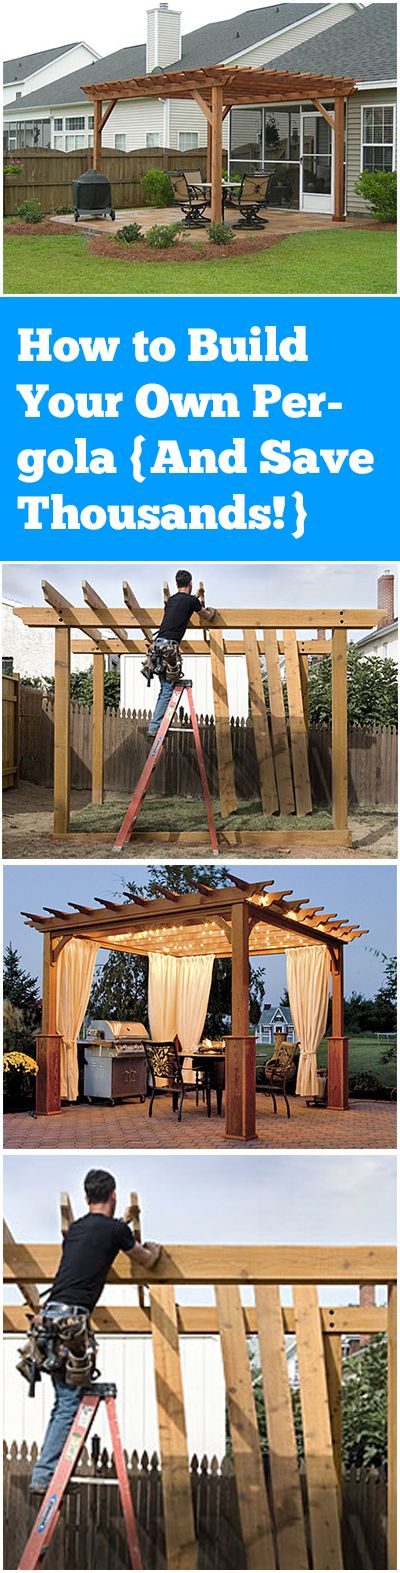 How-to-Build-Your-Own-Pergola-And-Save-Thousands.jpg 400×1.573 pixels